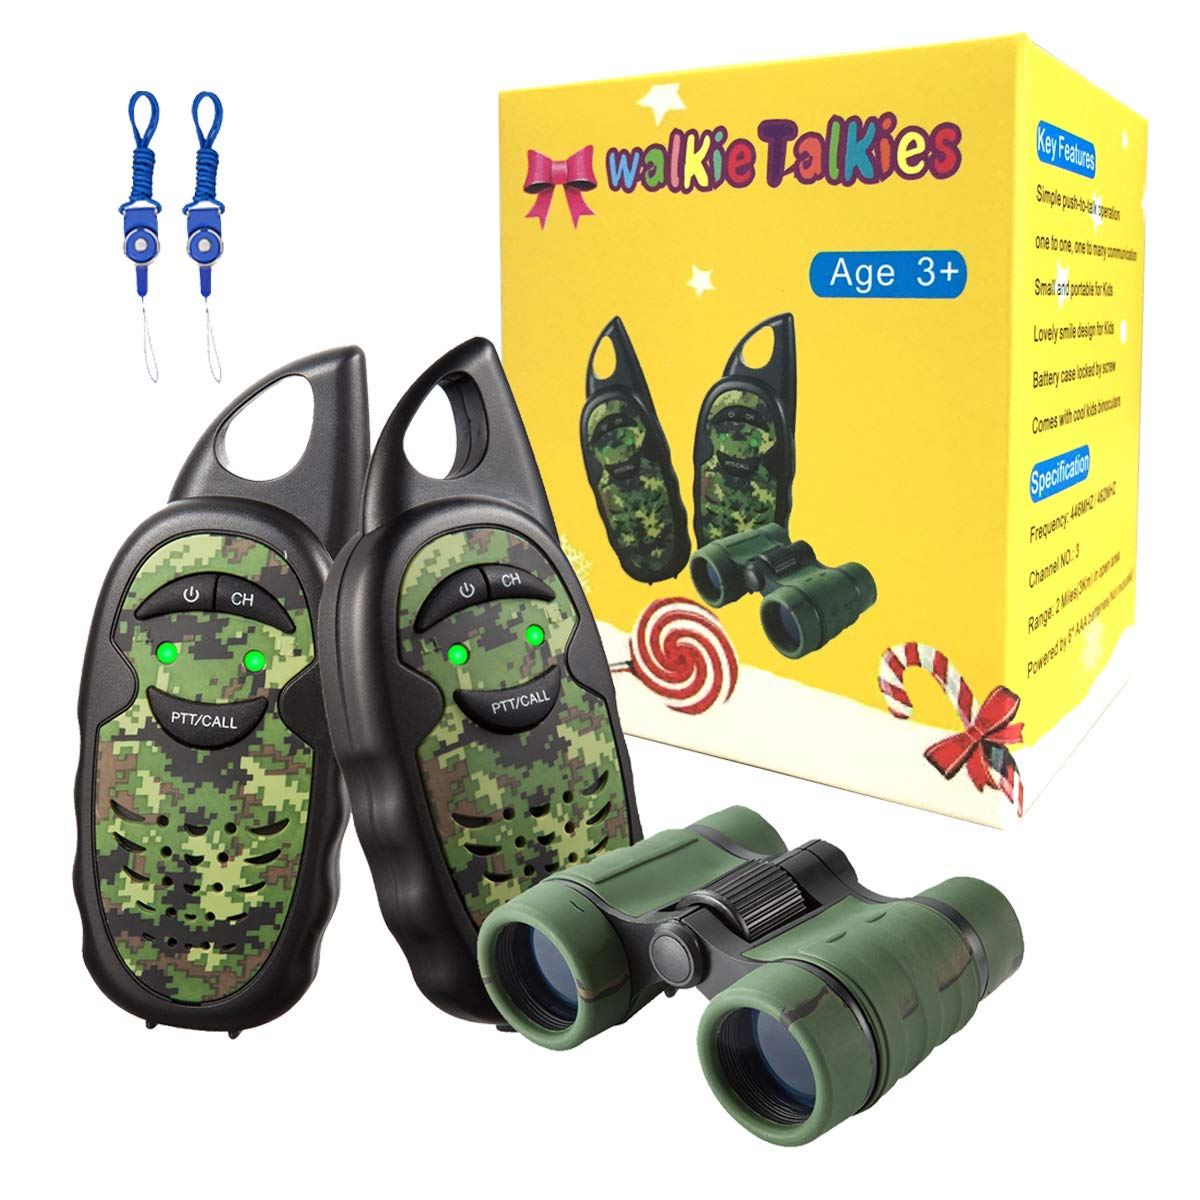 Walkie Talkies for Kids with Binoculars, 2 Mile FRS Technology 2 way radio Toy, Easy to Use for Little Hands Walkie Talkies for Boys, Walkie Talkie Set with Kids Binoculars,Best Toys Gifts for Kids by inYYTer (Image #1)